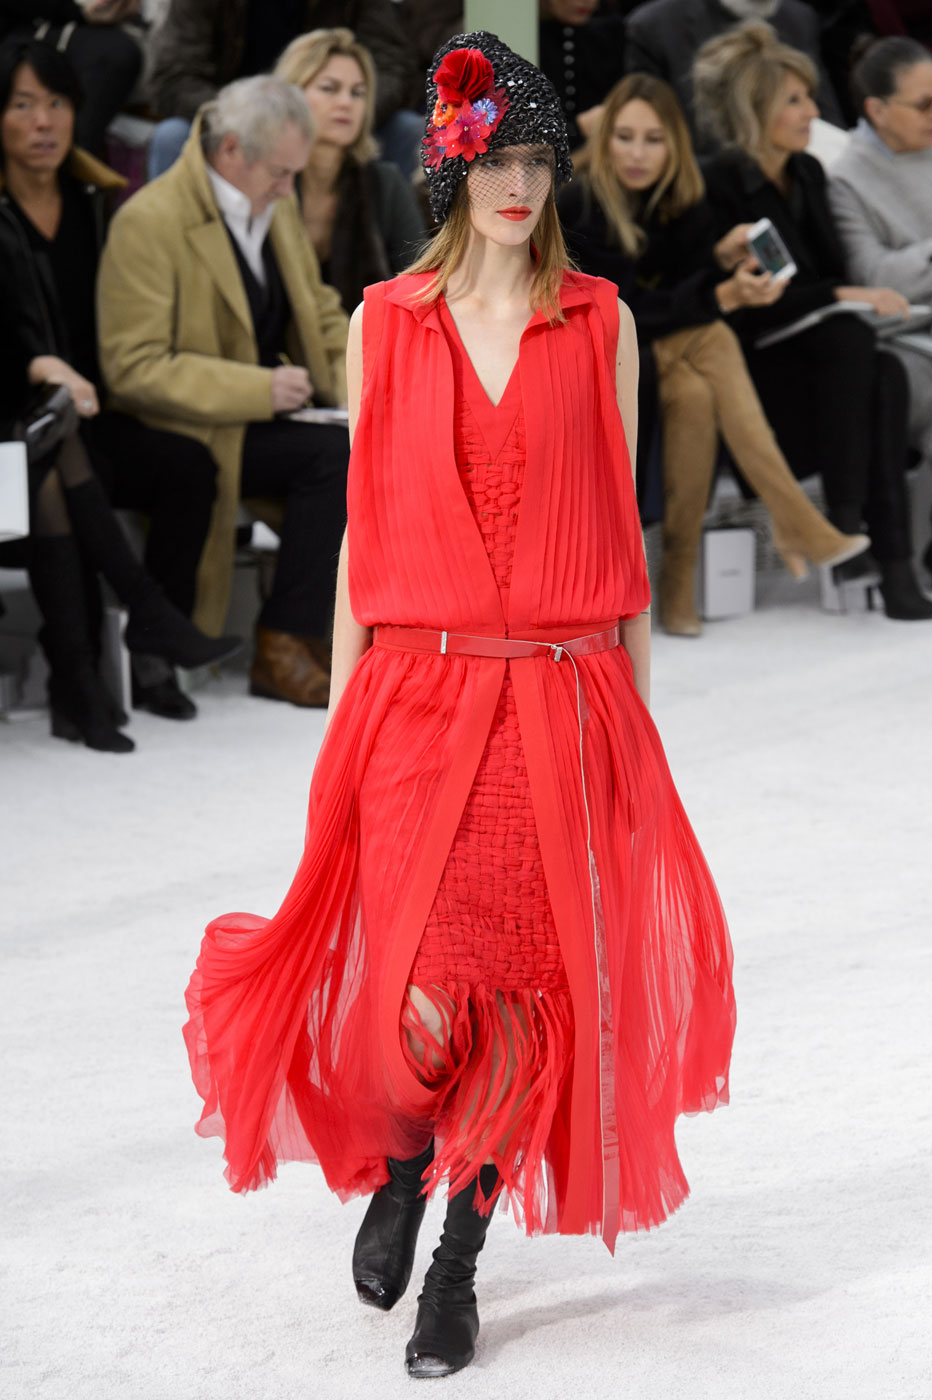 Chanel-fashion-runway-show-haute-couture-paris-spring-summer-2015-the-impression-068